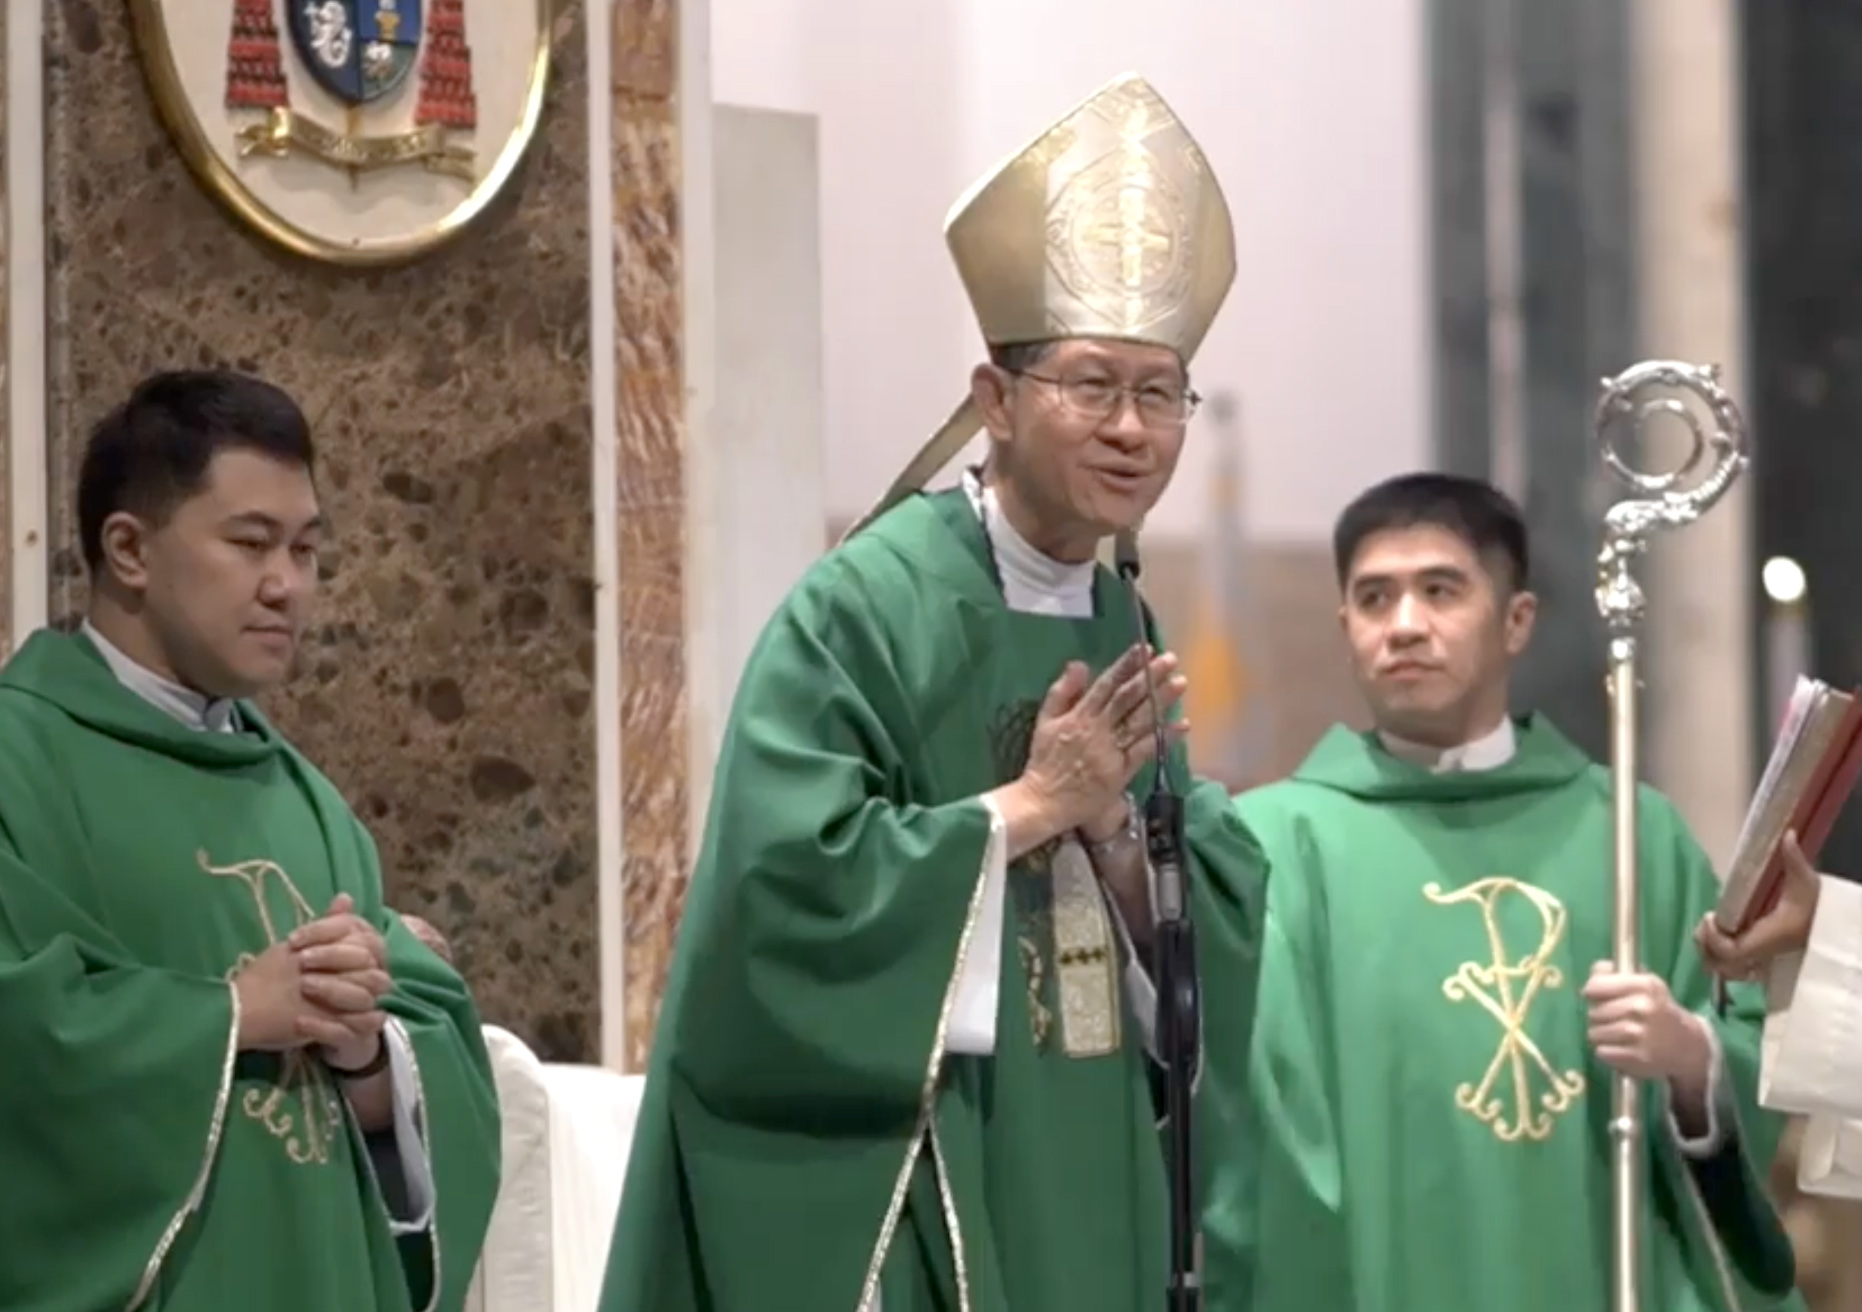 Cardinal Tagle leaves Manila for new mission in Rome